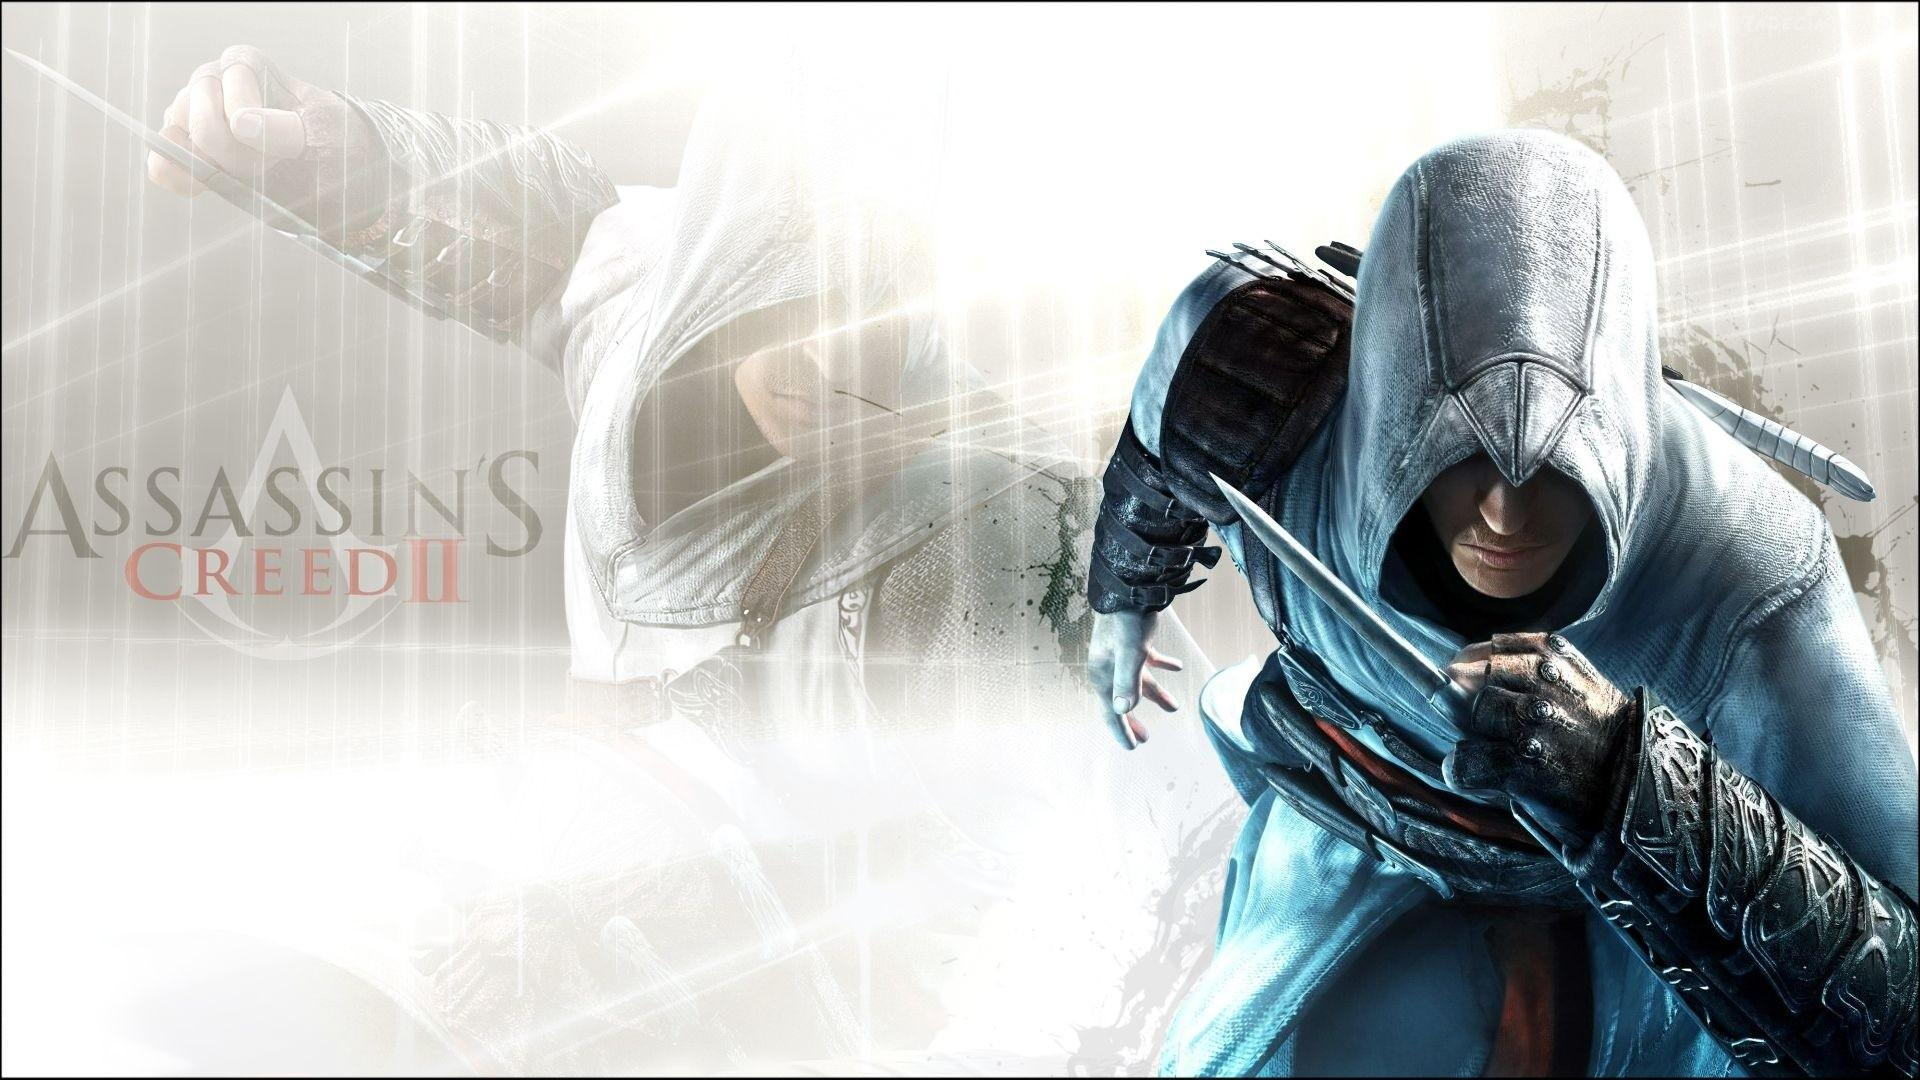 assassin 39 s creed ii best game hd wallpapers all hd wallpapers. Black Bedroom Furniture Sets. Home Design Ideas